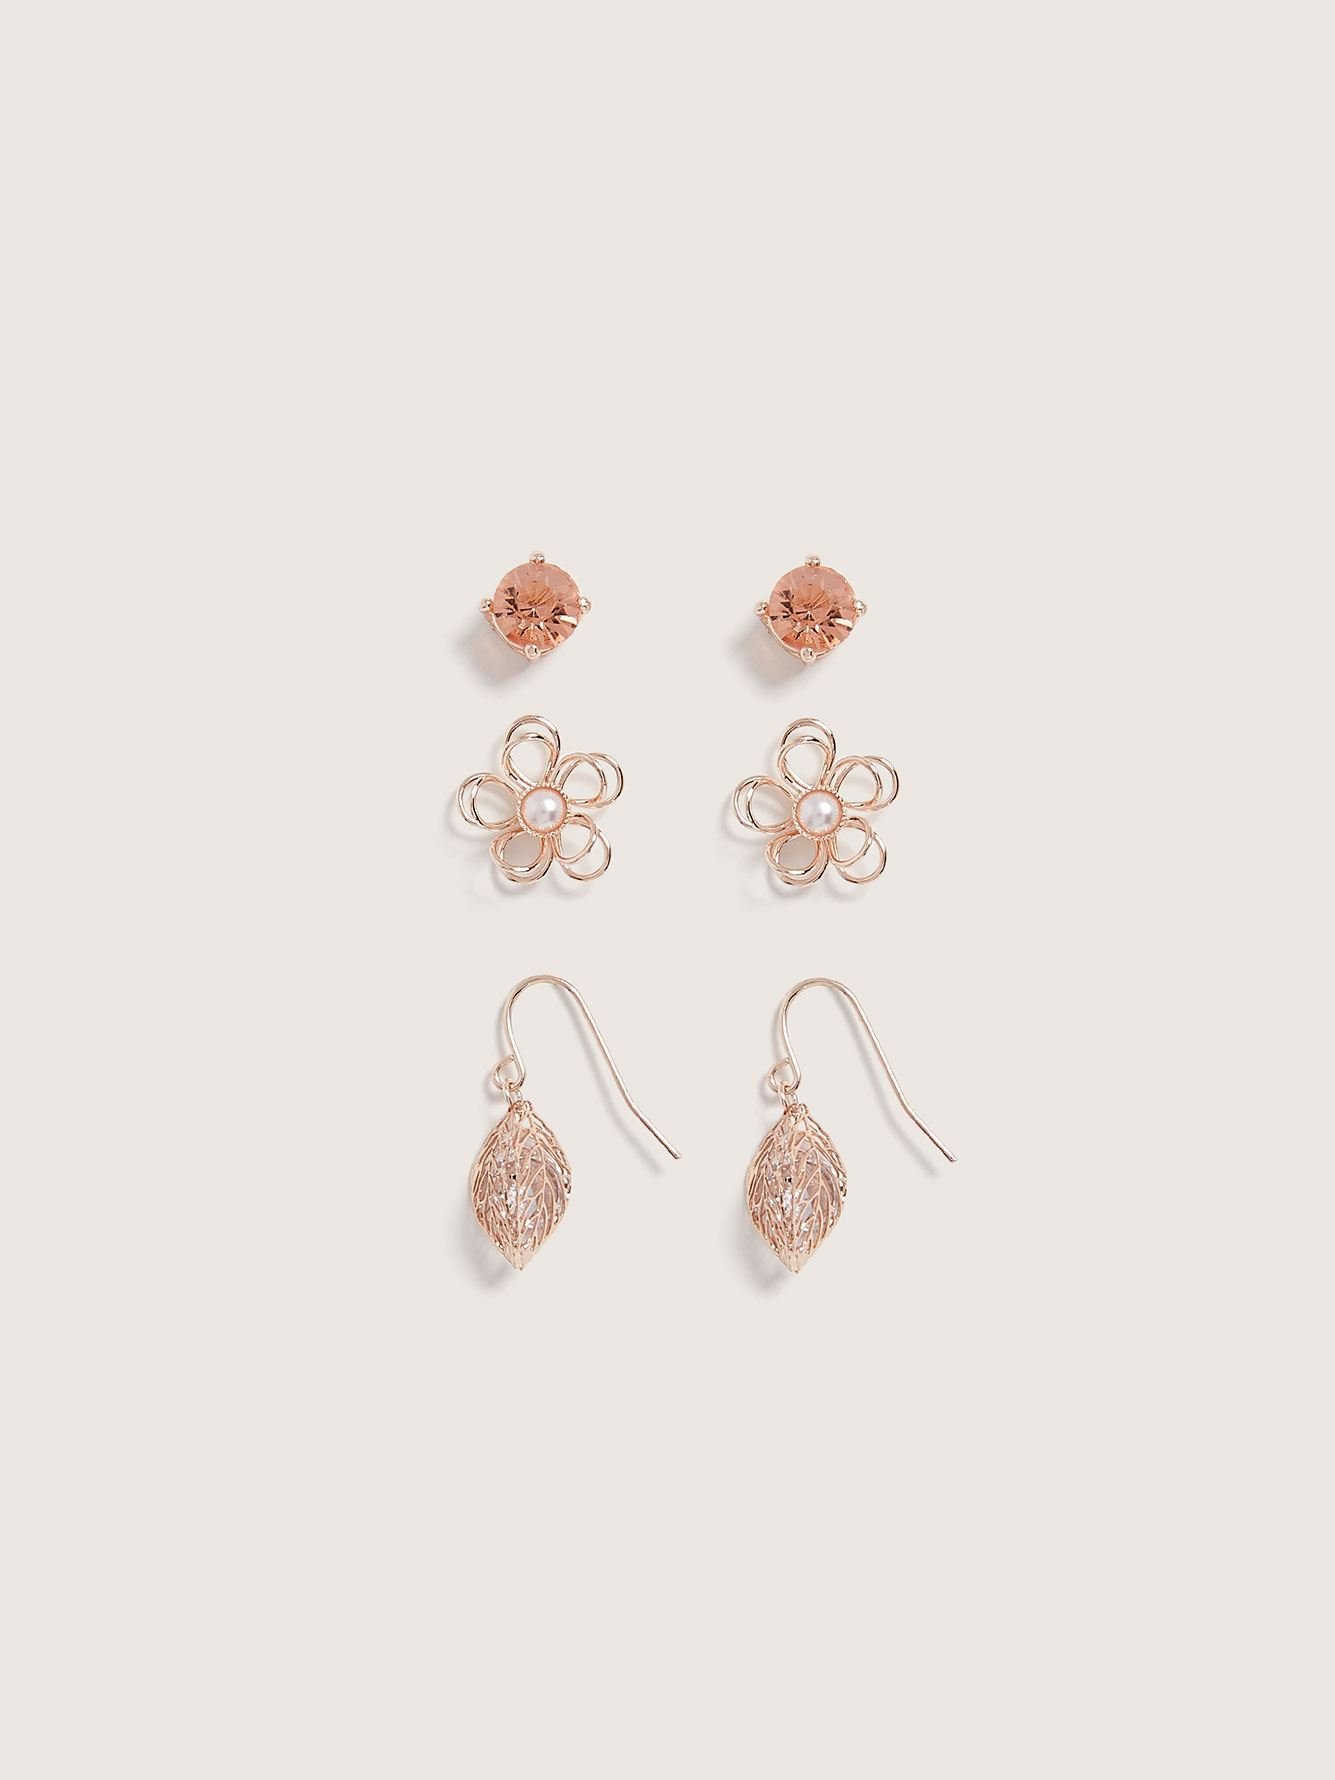 Boucles d'oreilles fixes, paquet de 3 - Addition Elle